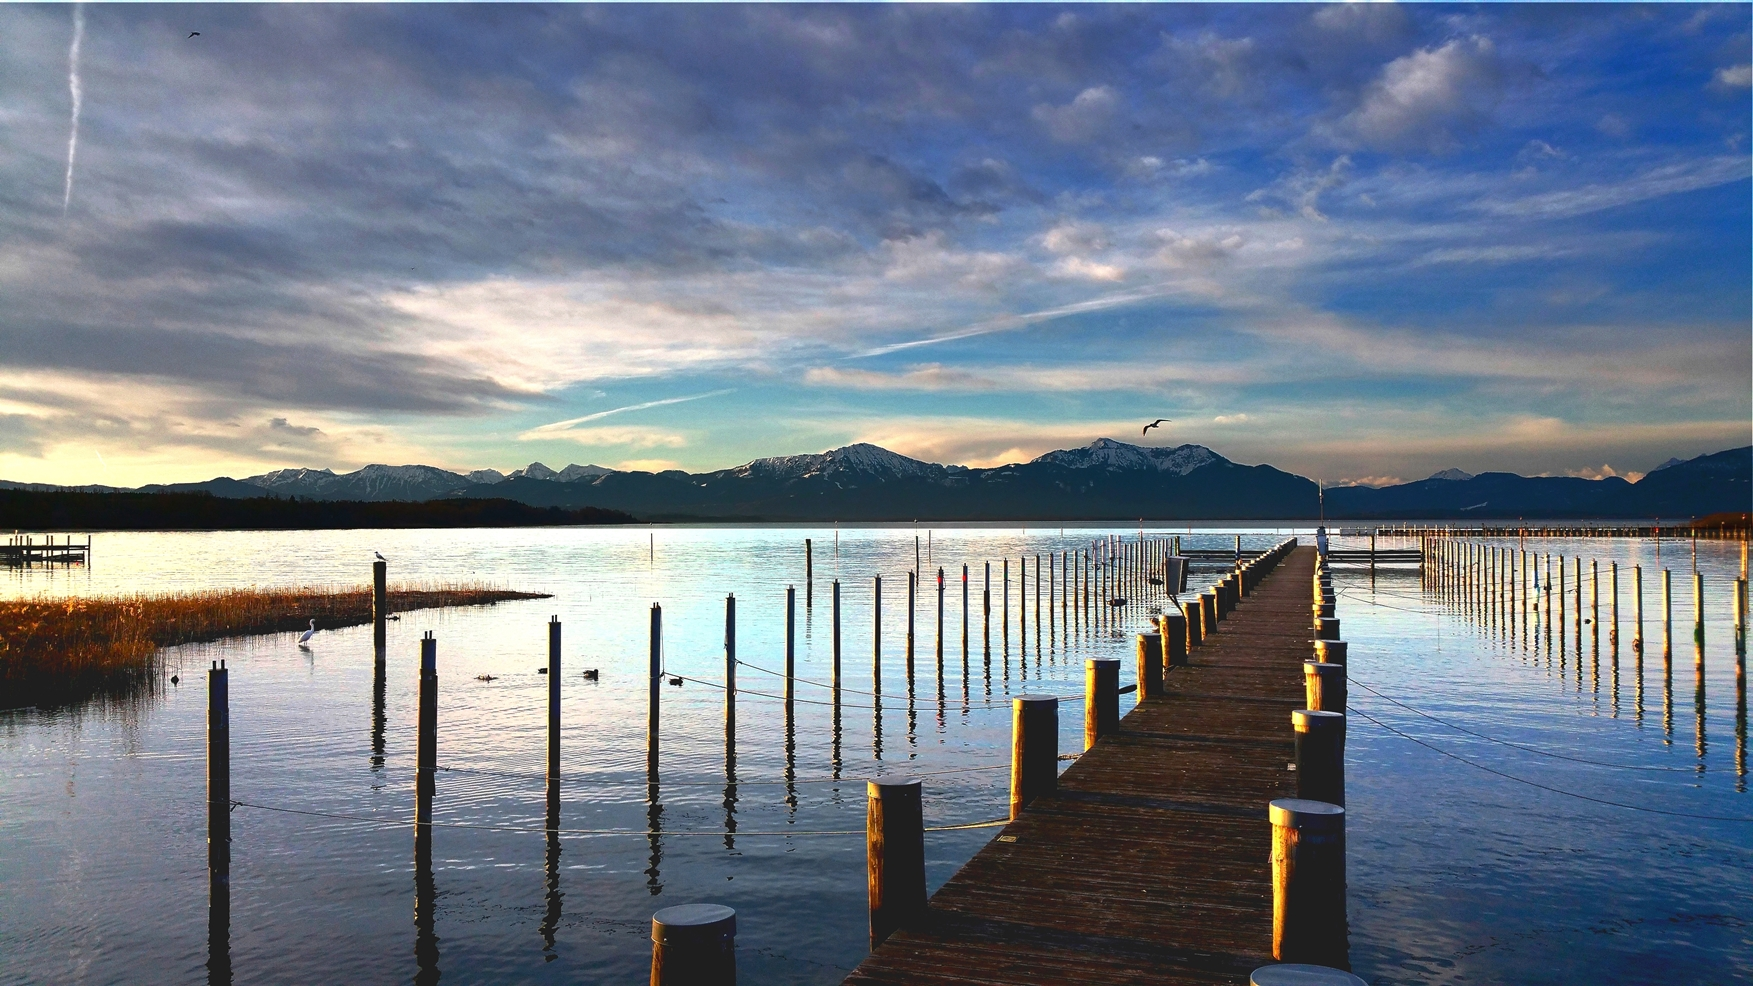 1_Magic_March_Chiemsee_quer1_B_LR